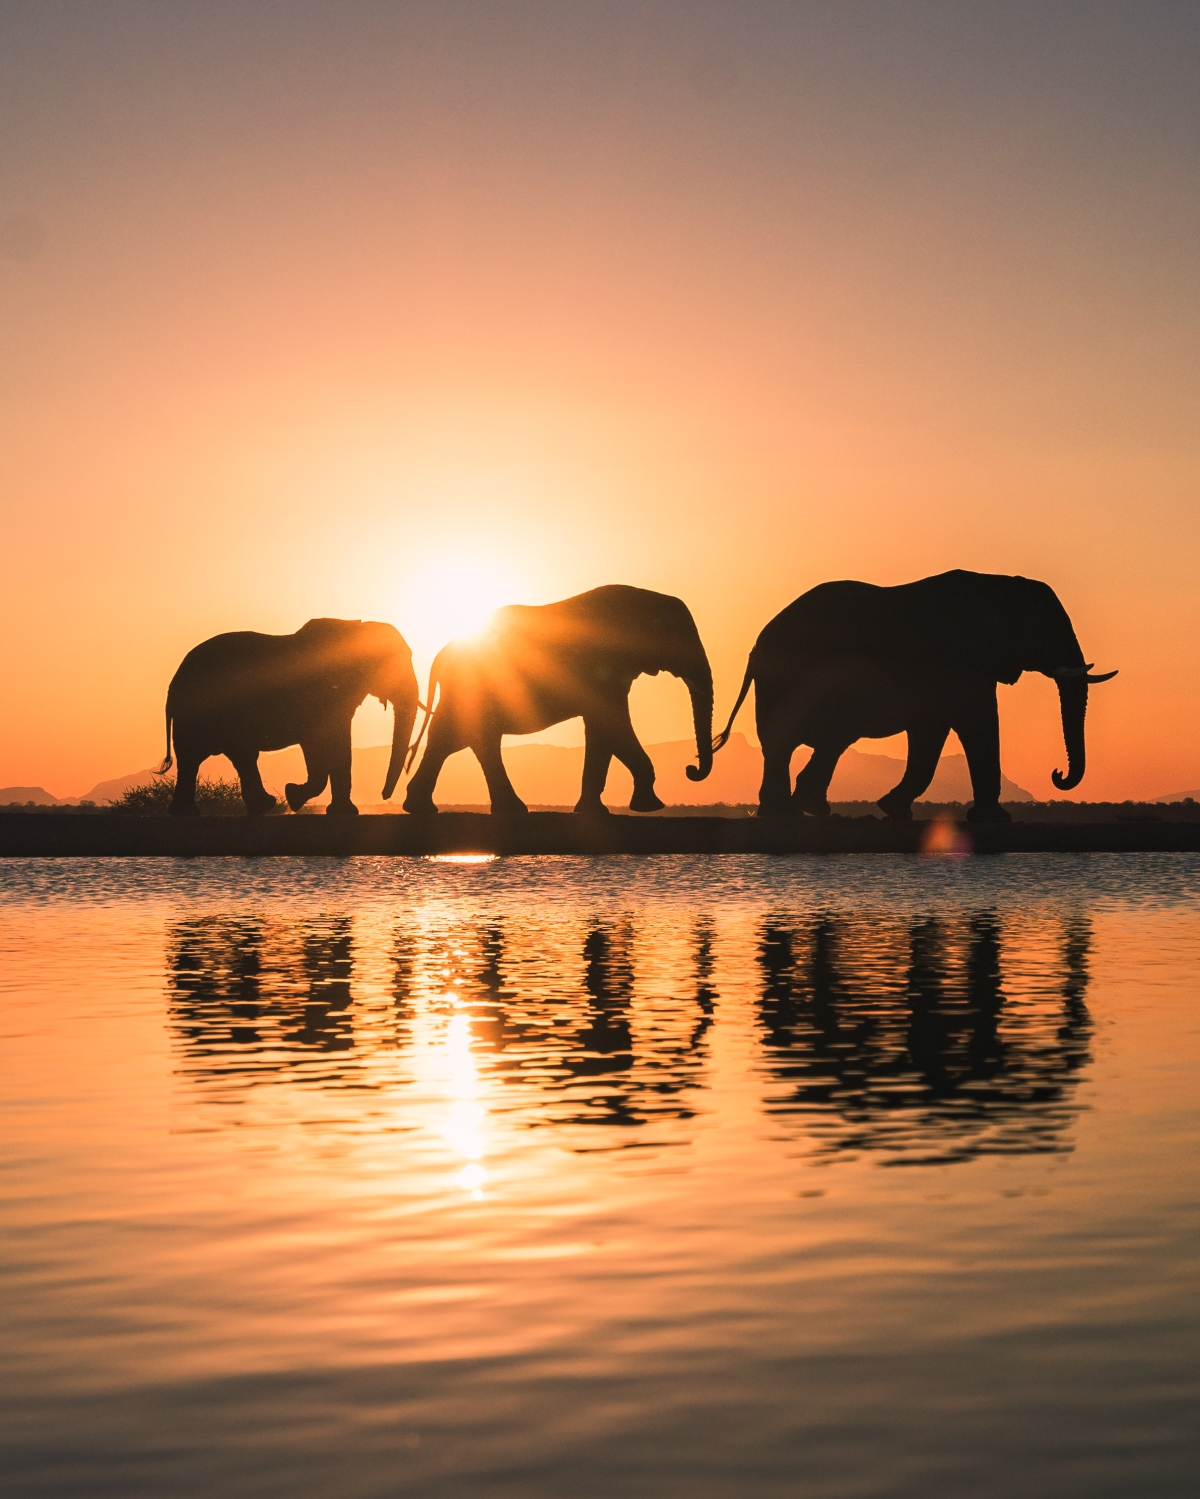 Jabulani-signature-sunset-elephants 2.jpg